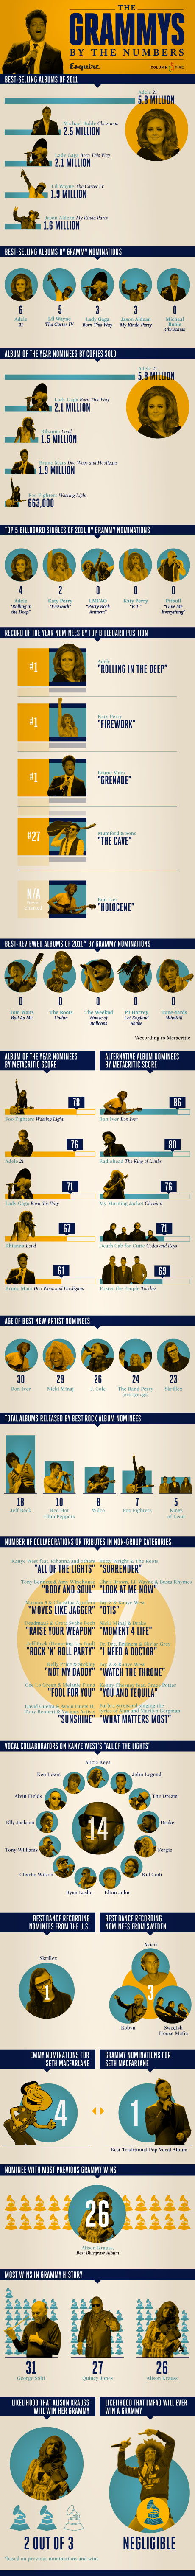 Infographic: The Truth About The Grammys: A Chart